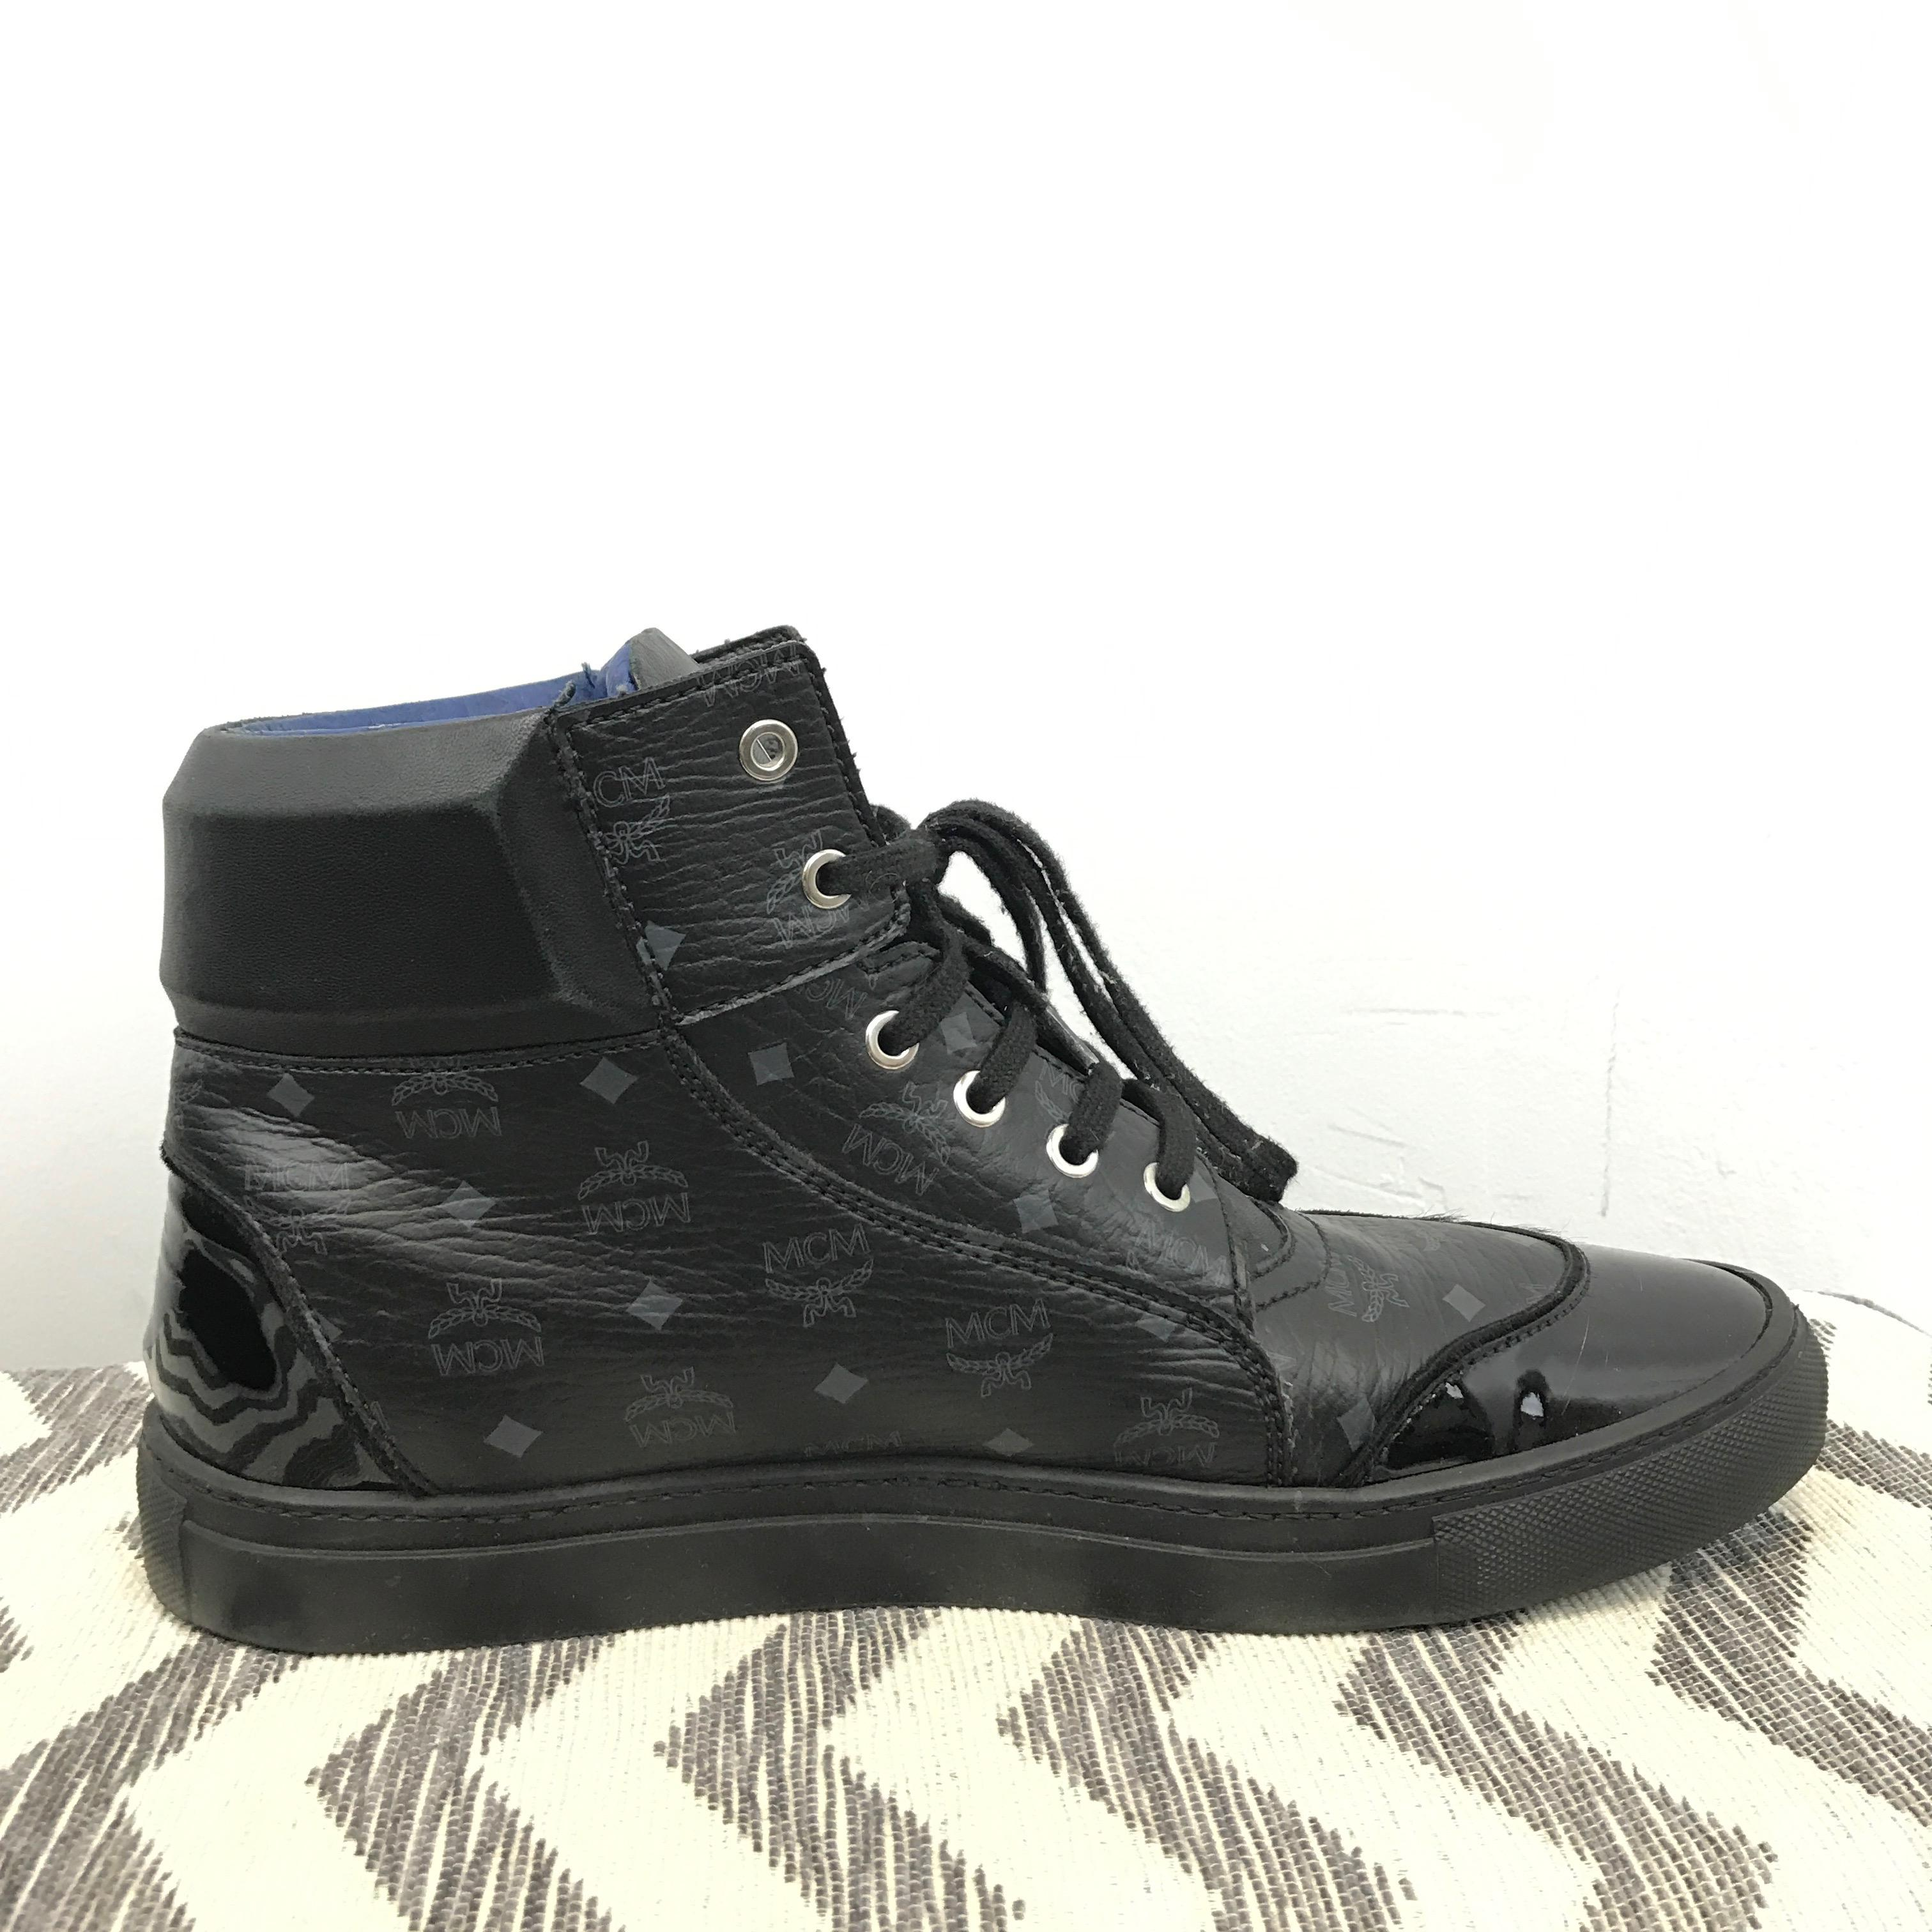 mcm black high top in italy sneakers size eu 45 approx